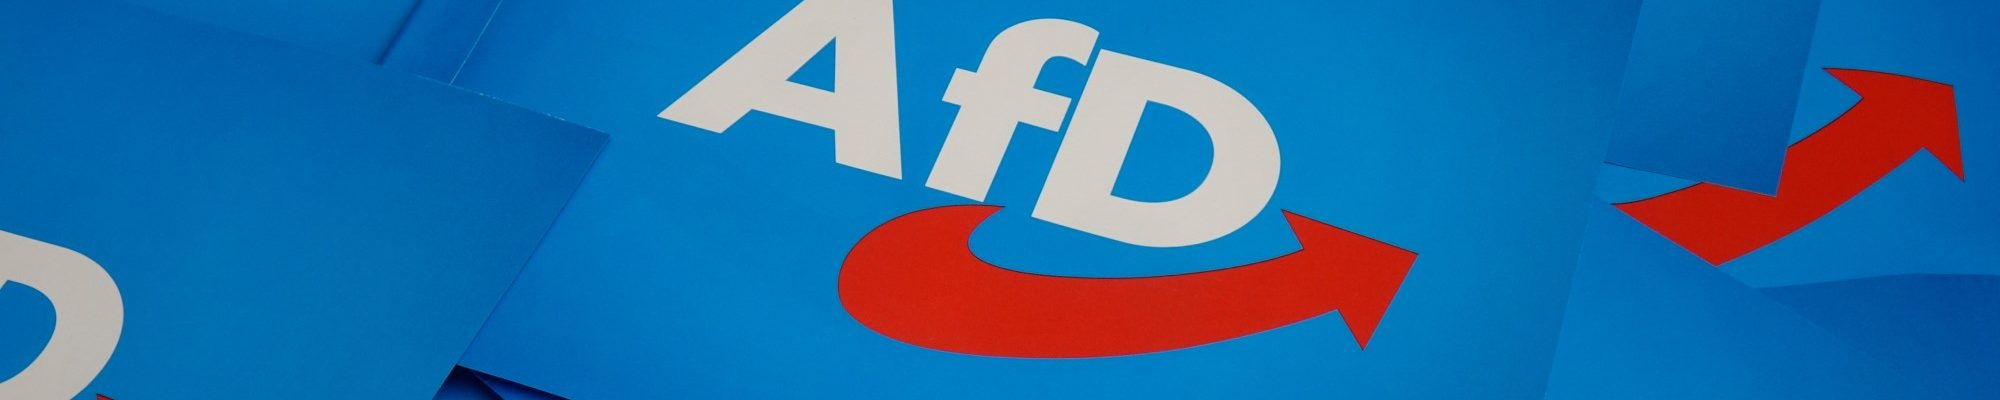 CDU-Fraktion-Frankfurt-am-Main-AFD-Logo-03.03.2020